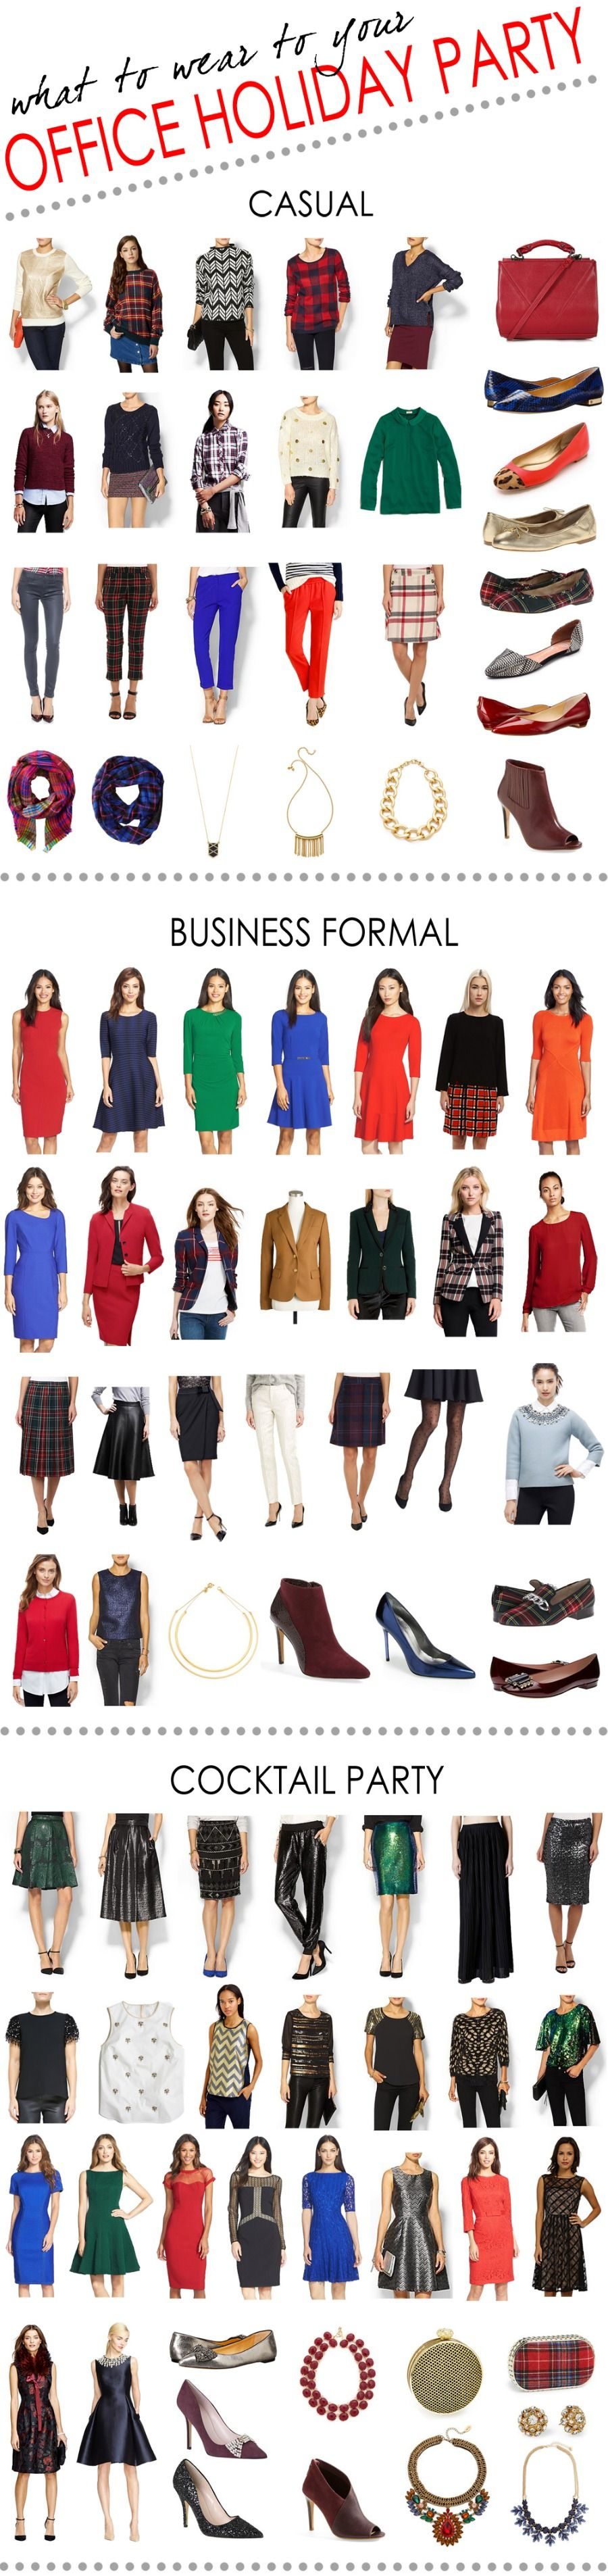 the ultimate guide to office holiday party attire all products what to wear to your casual business formal or cocktail holiday work party or ideas for colorful work outfits